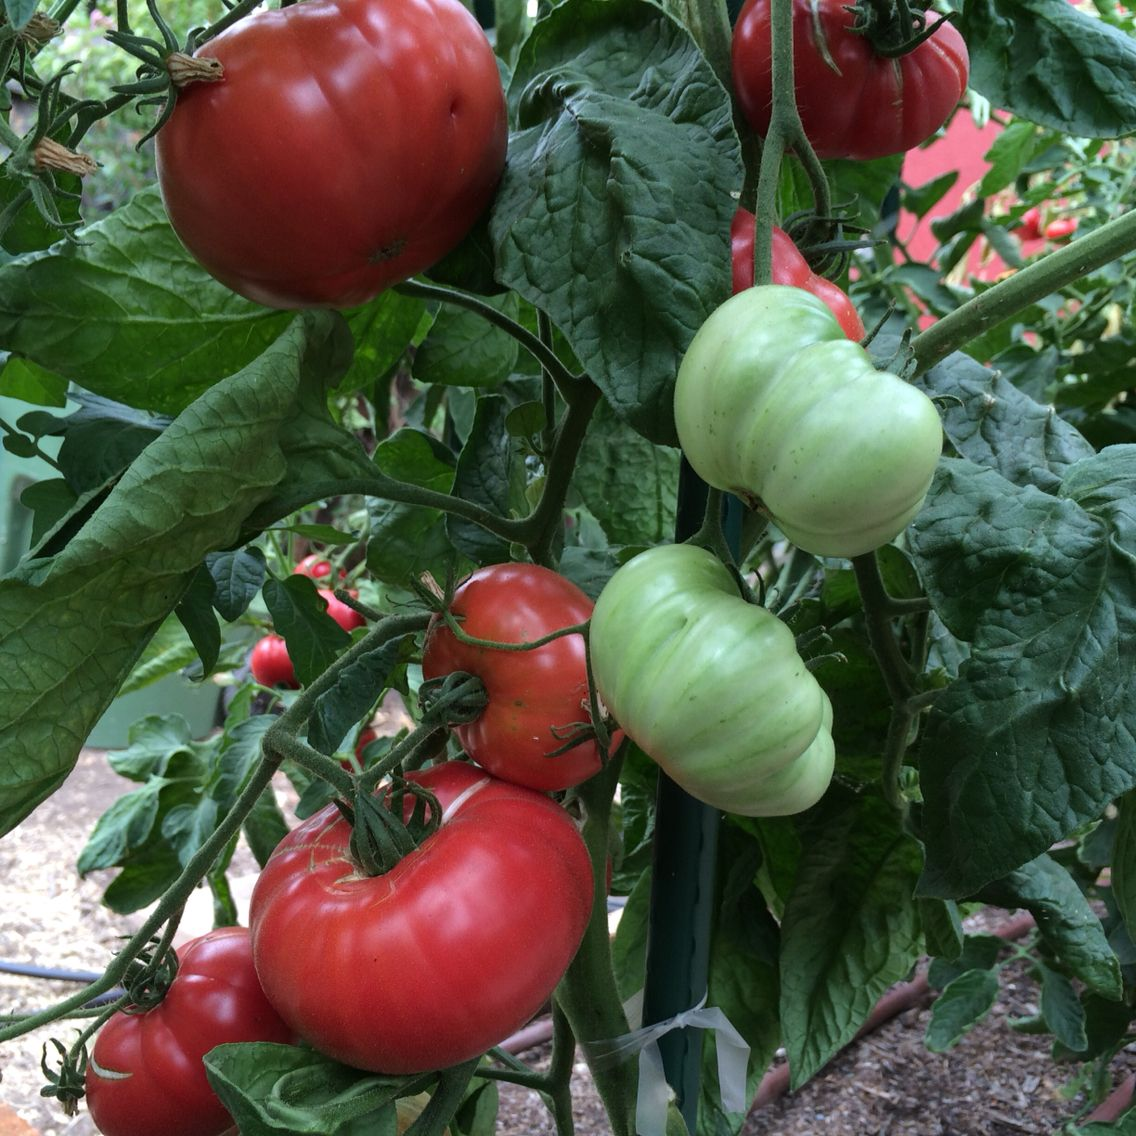 Pink Brandywine Tomatoes Ripening At Our 400 x 300